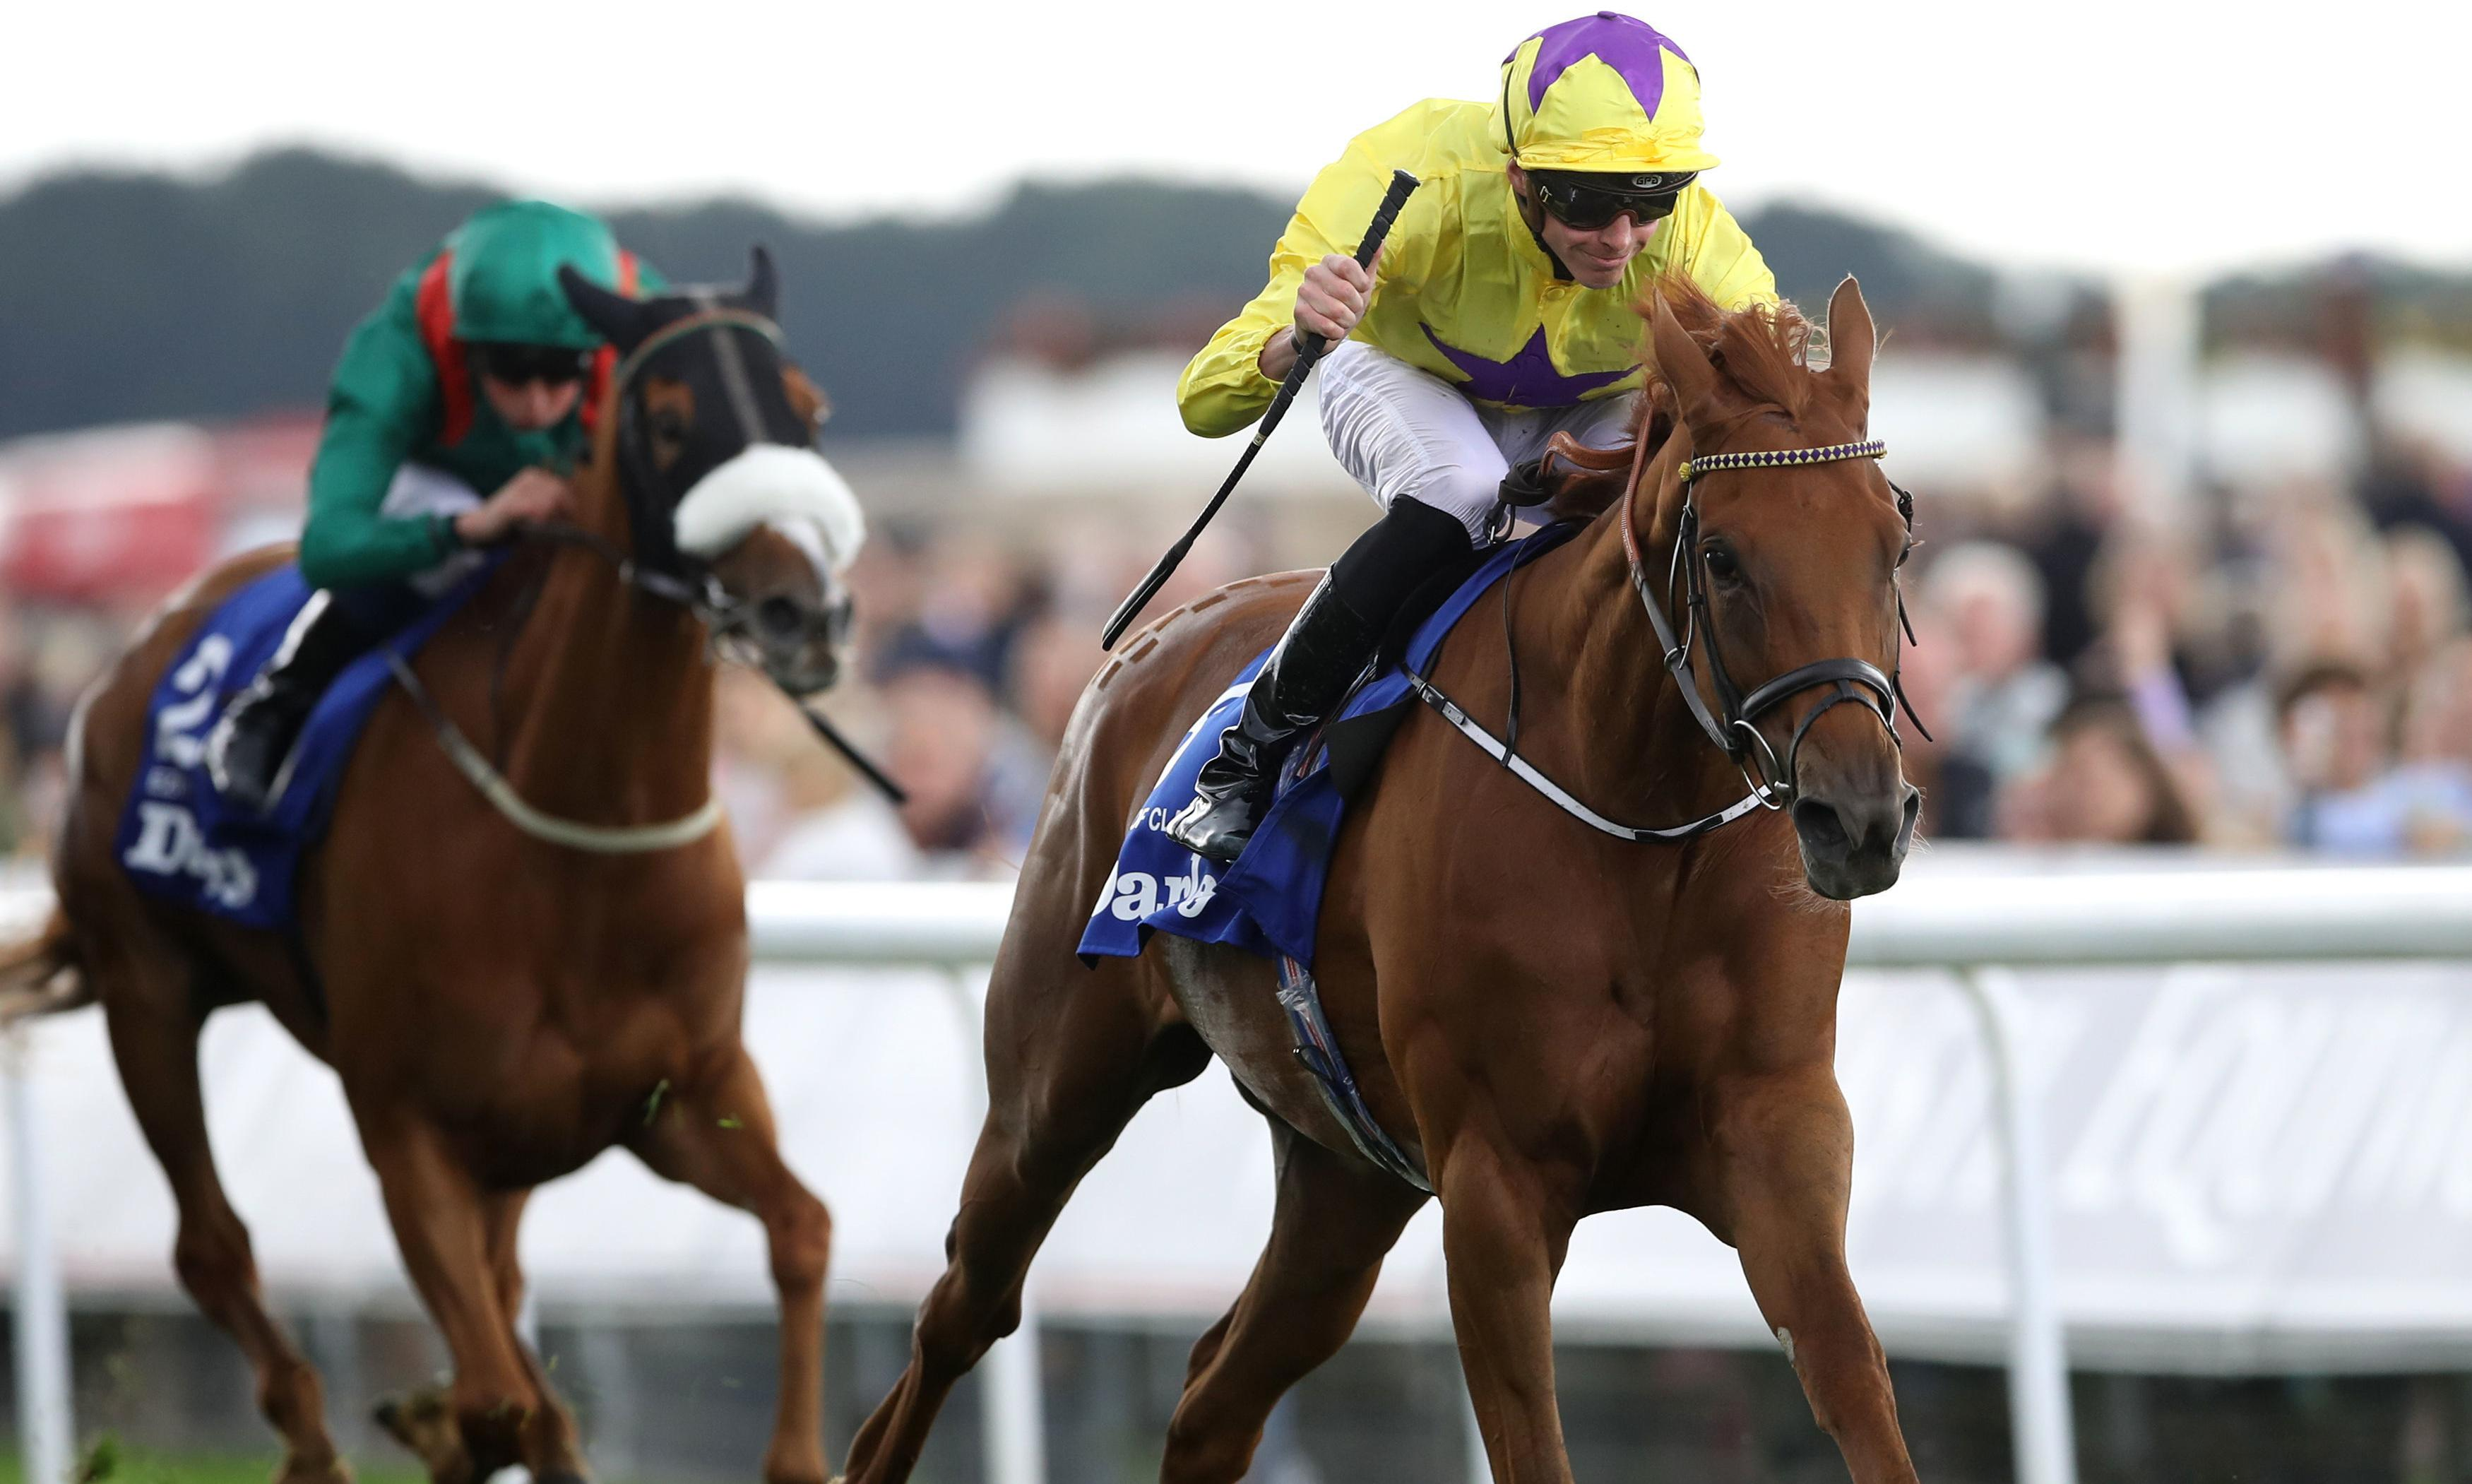 Sea Of Class fights for life after colic attack ends filly's career